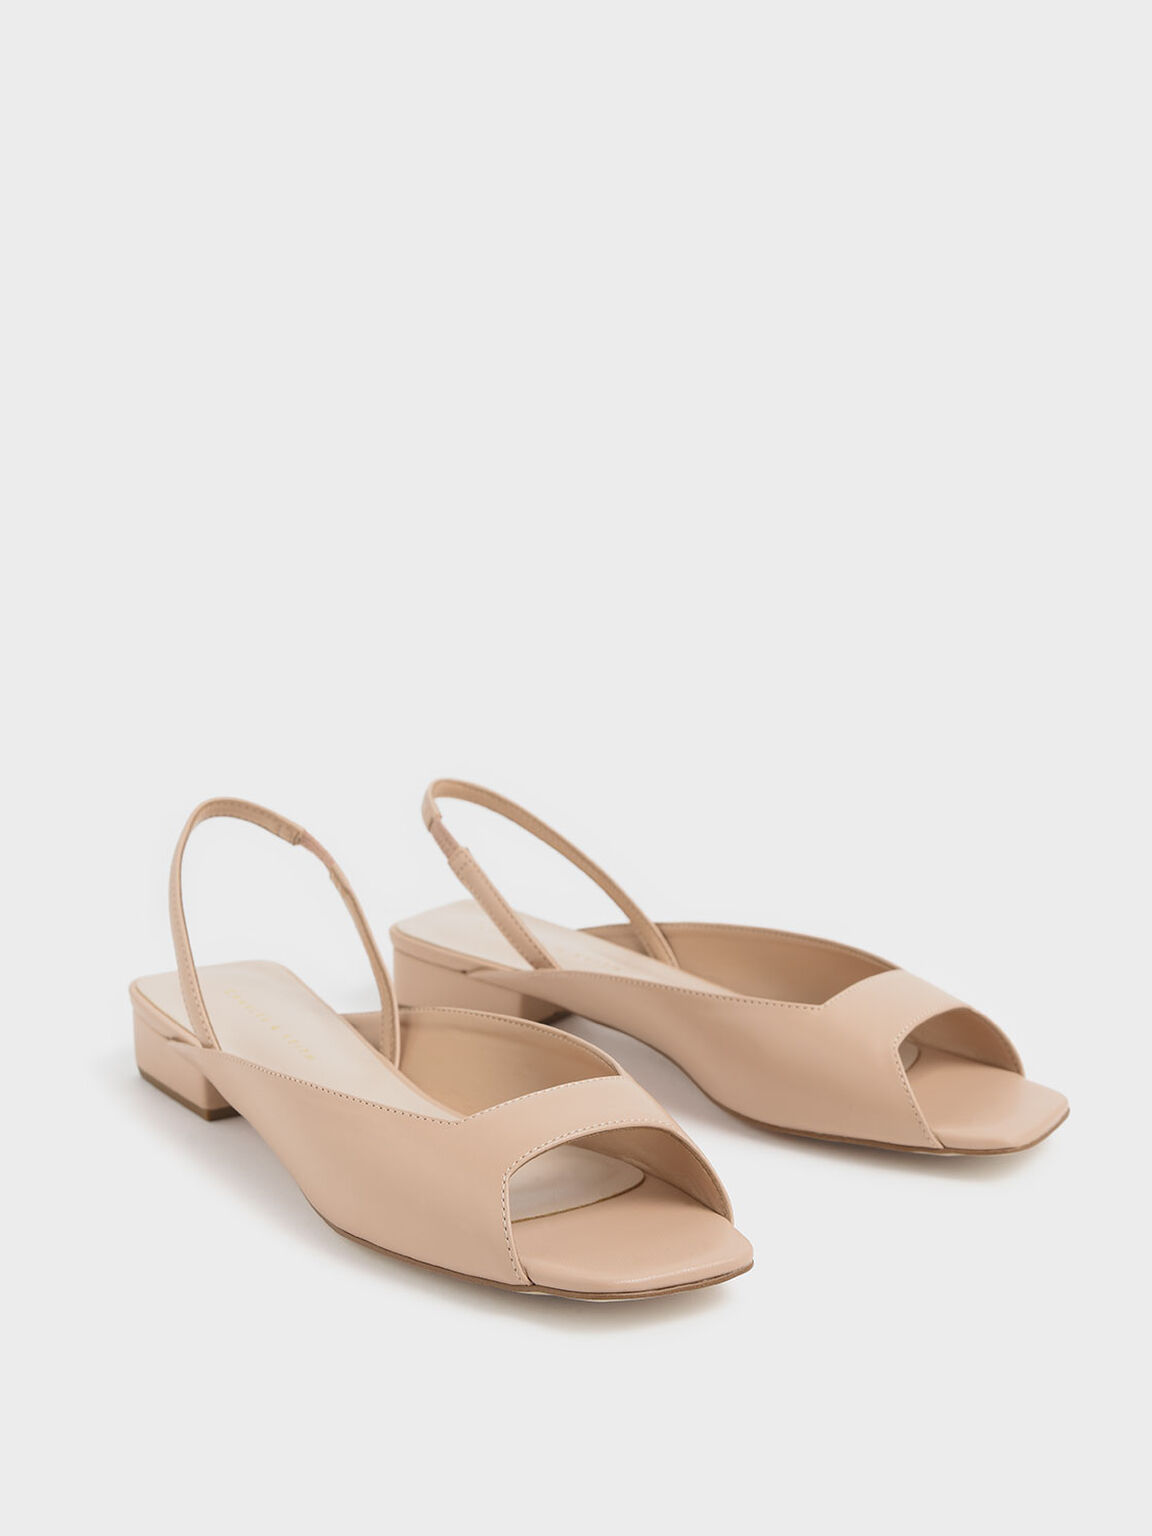 Square Toe Mini Block Heel Slingback Sandals, Nude, hi-res